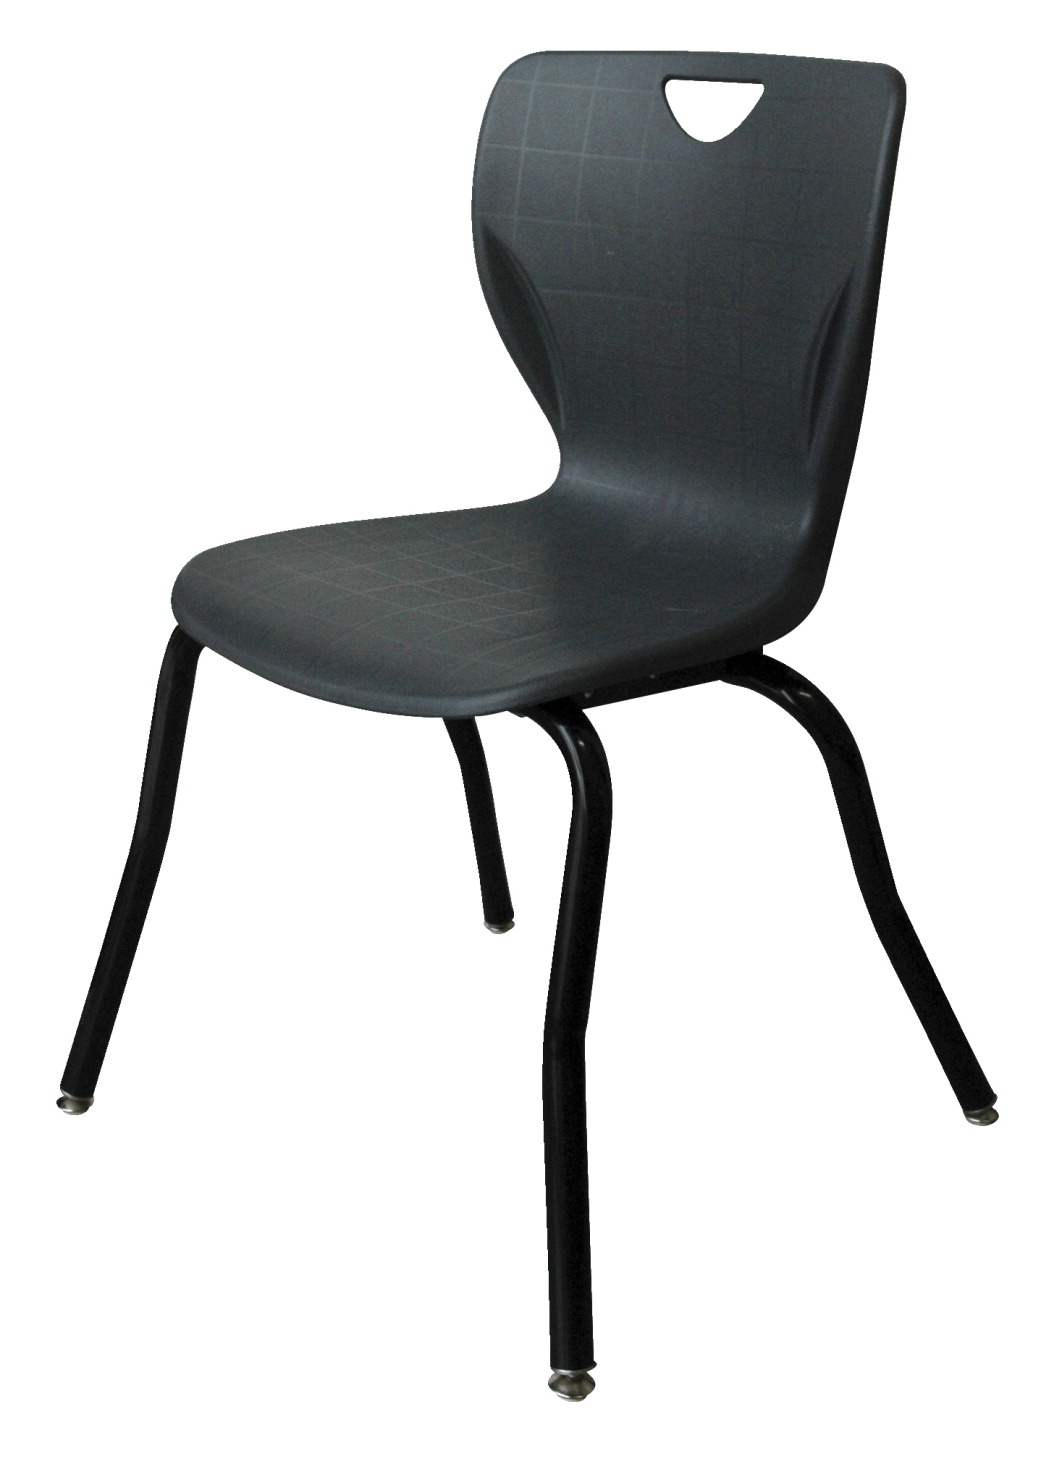 Classroom Select Contemporary Music Chair, 18 Inch A+ Seat Height, Black Frame, Various Options